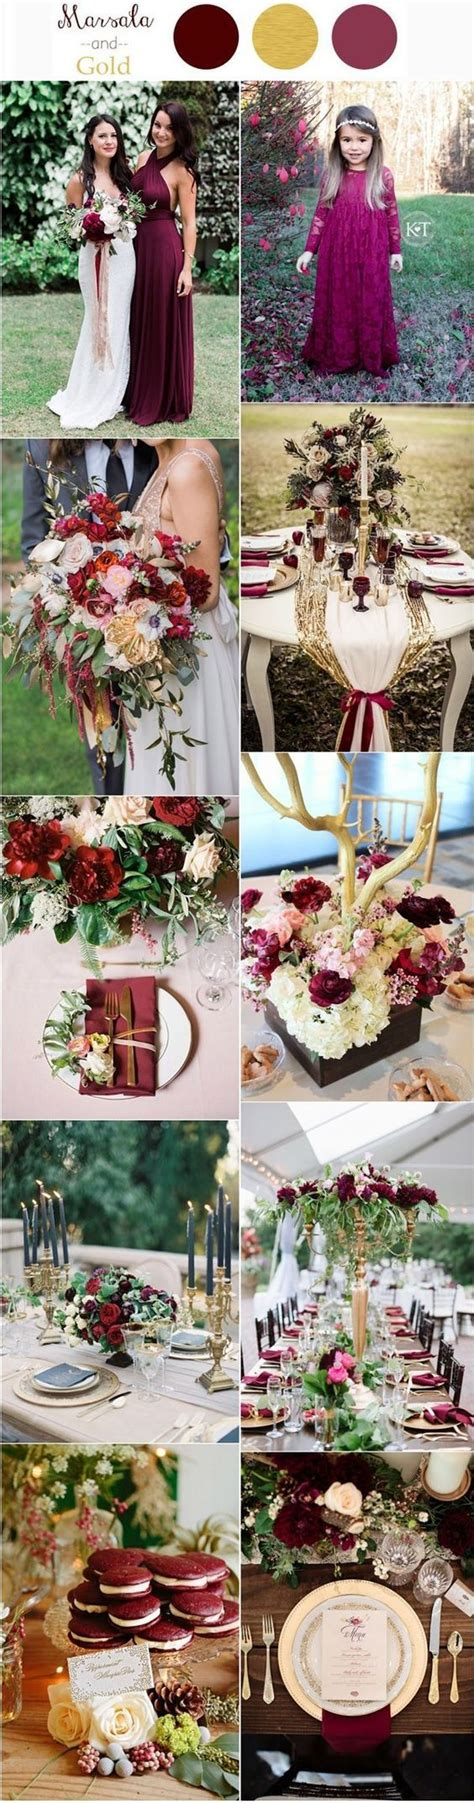 wedding color ideas burgundy and gold fall wedding color ideas www